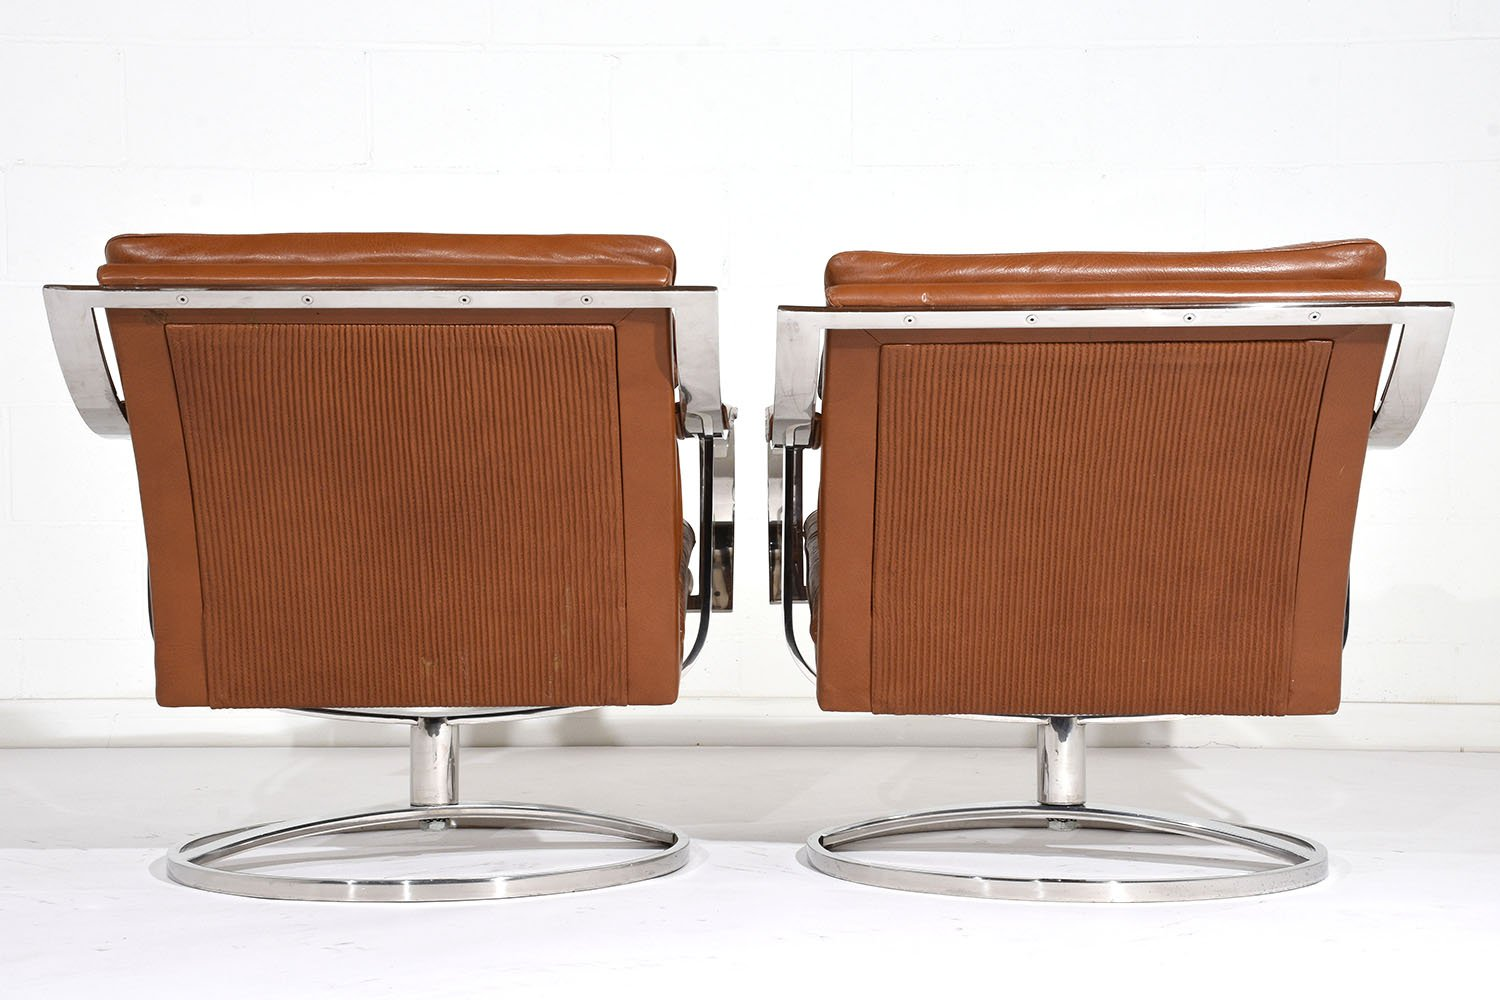 Mid century modern lounge chairs by gardner leaver for steelcase set of 2